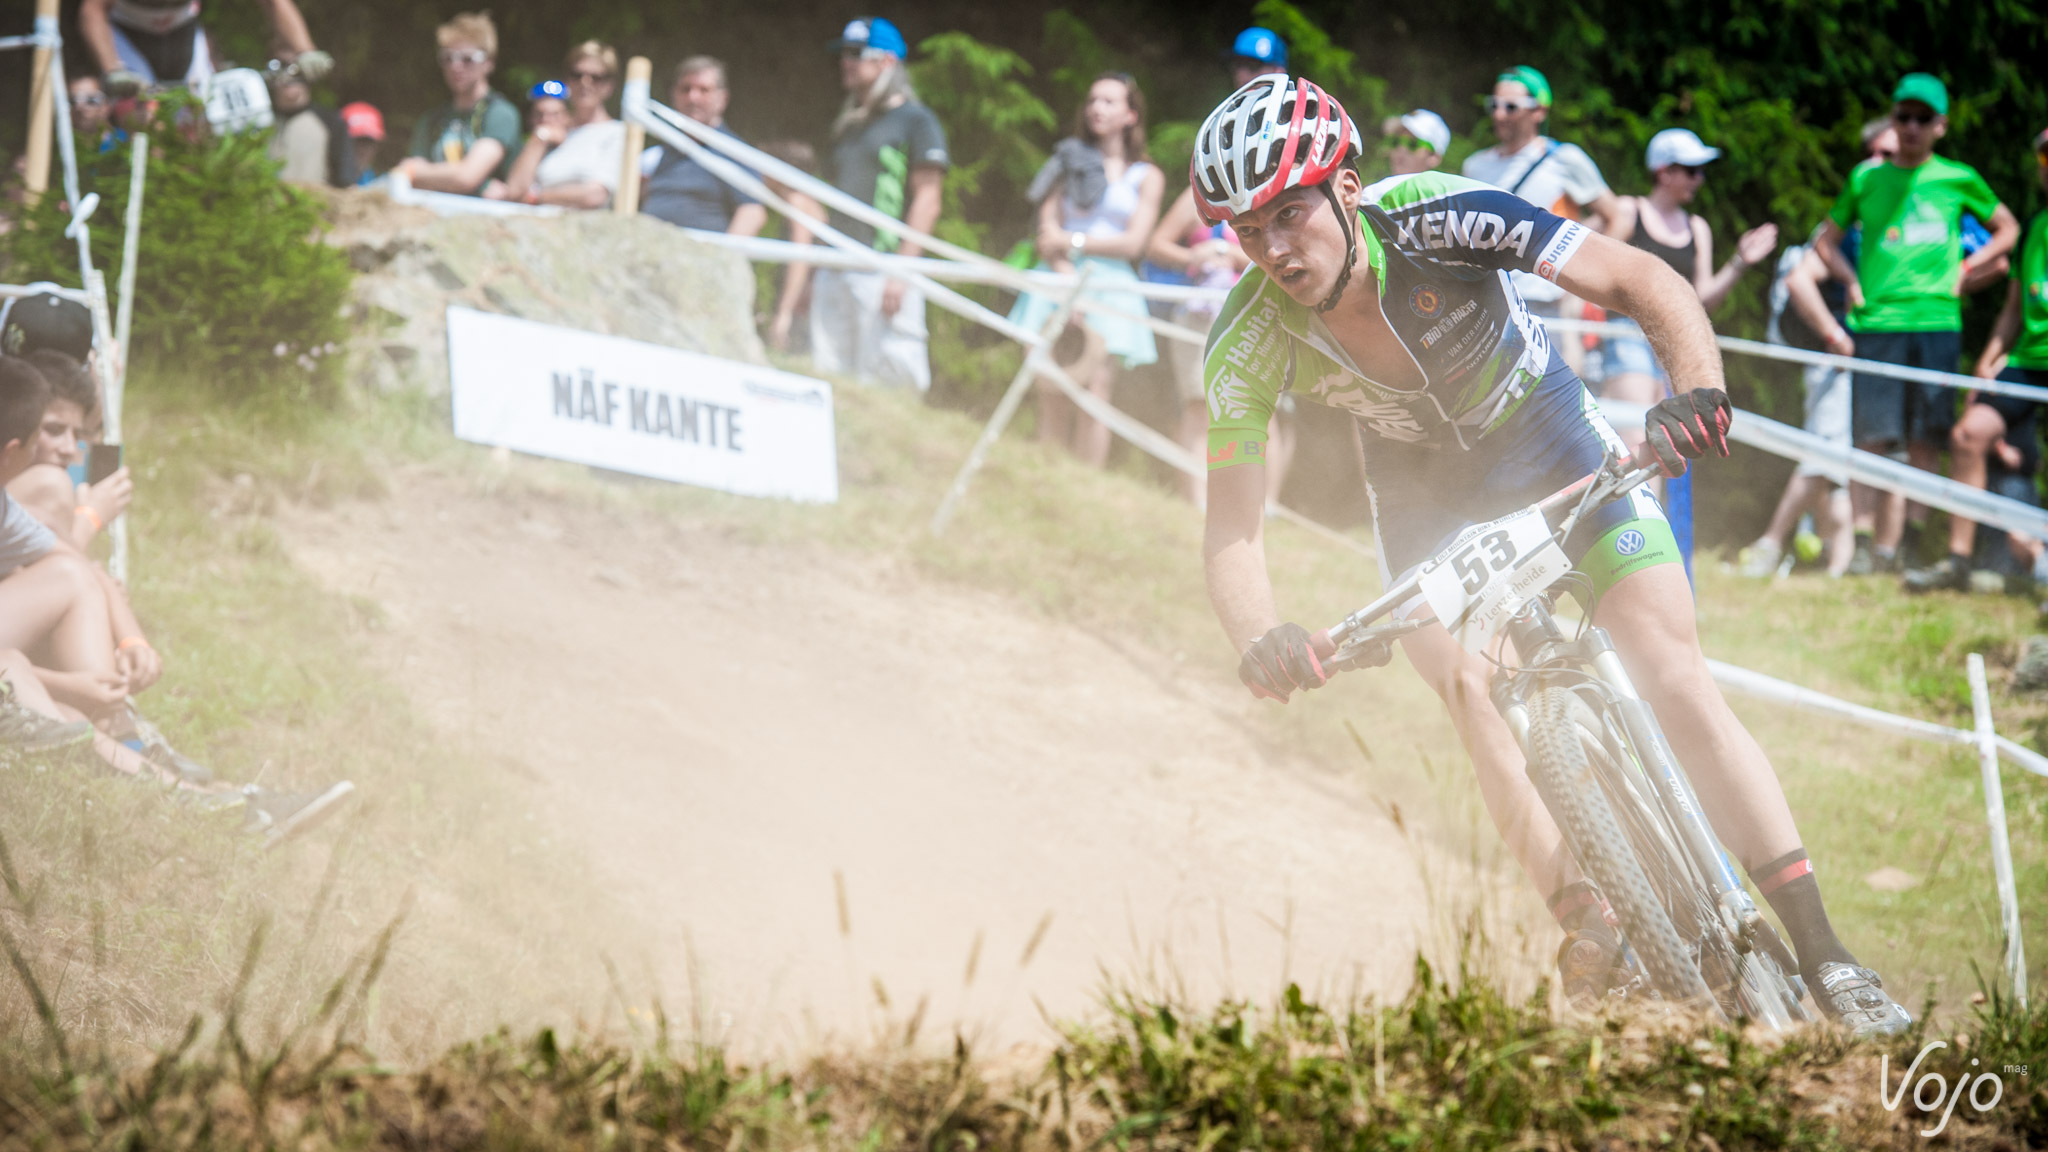 Light-WorldCup-Lenzerheide-2015-XCO-Hommes-14